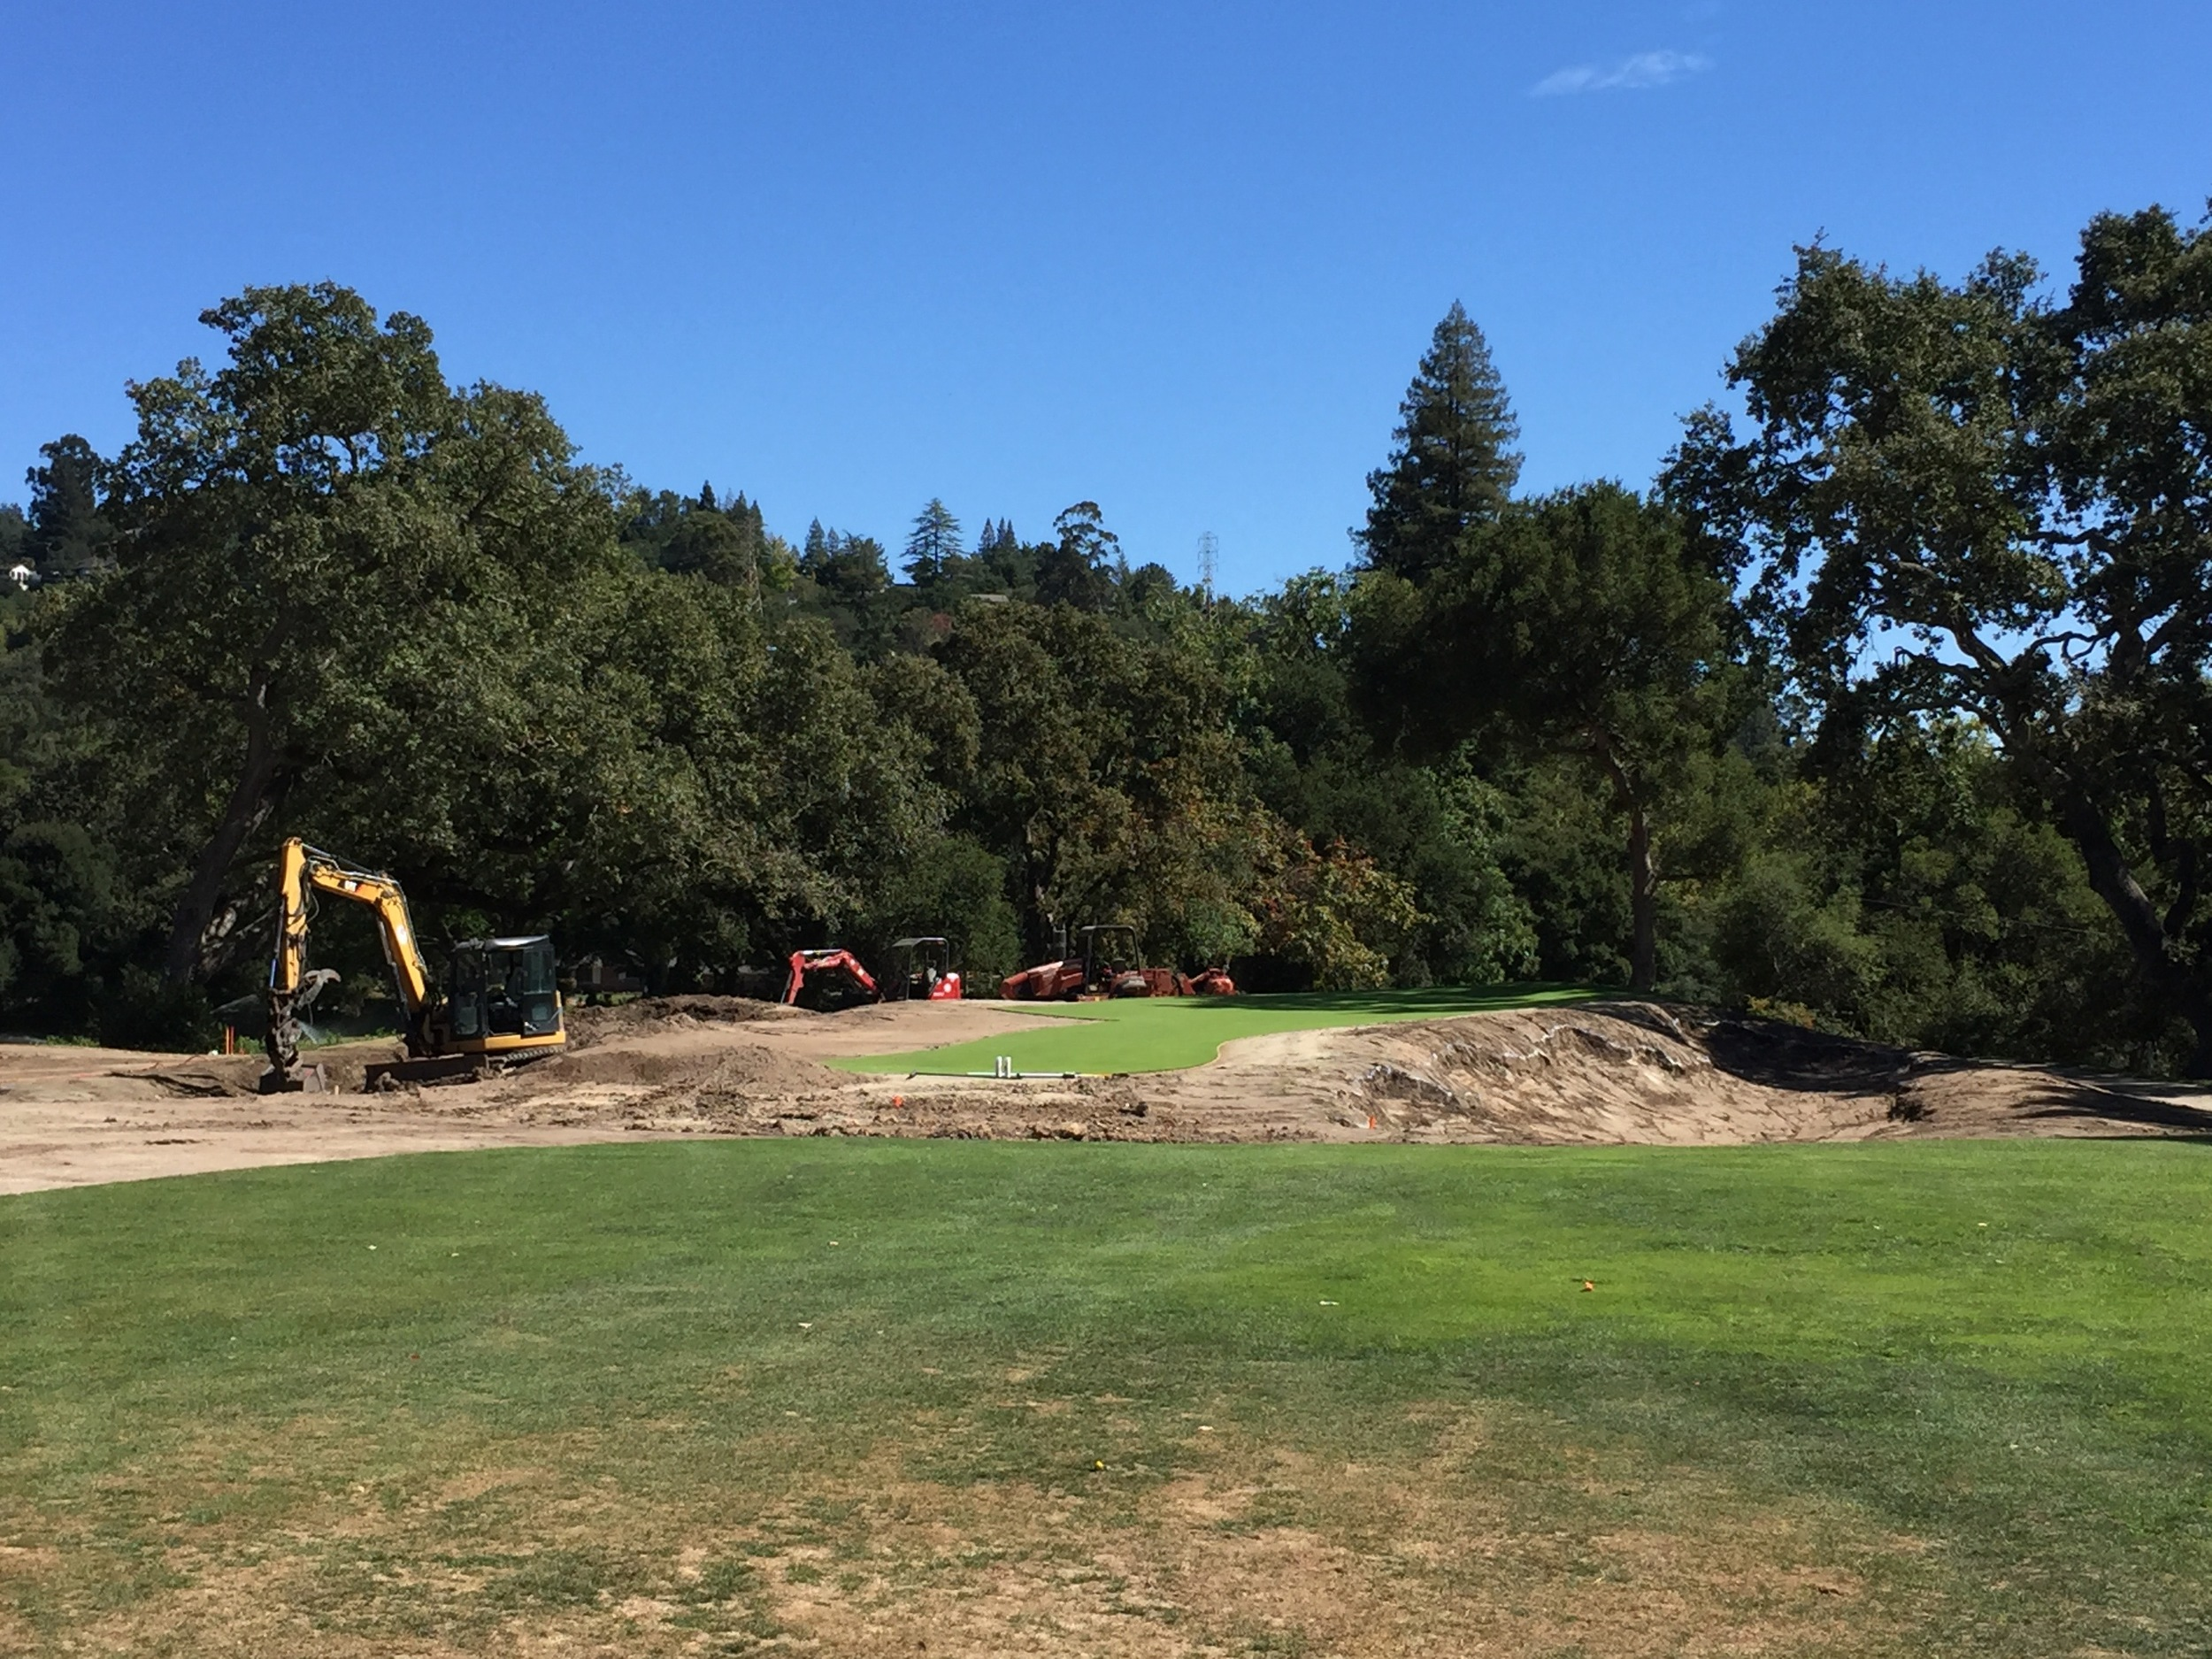 hochstein-design-orinda-cc-hole-14-construction-3.jpg